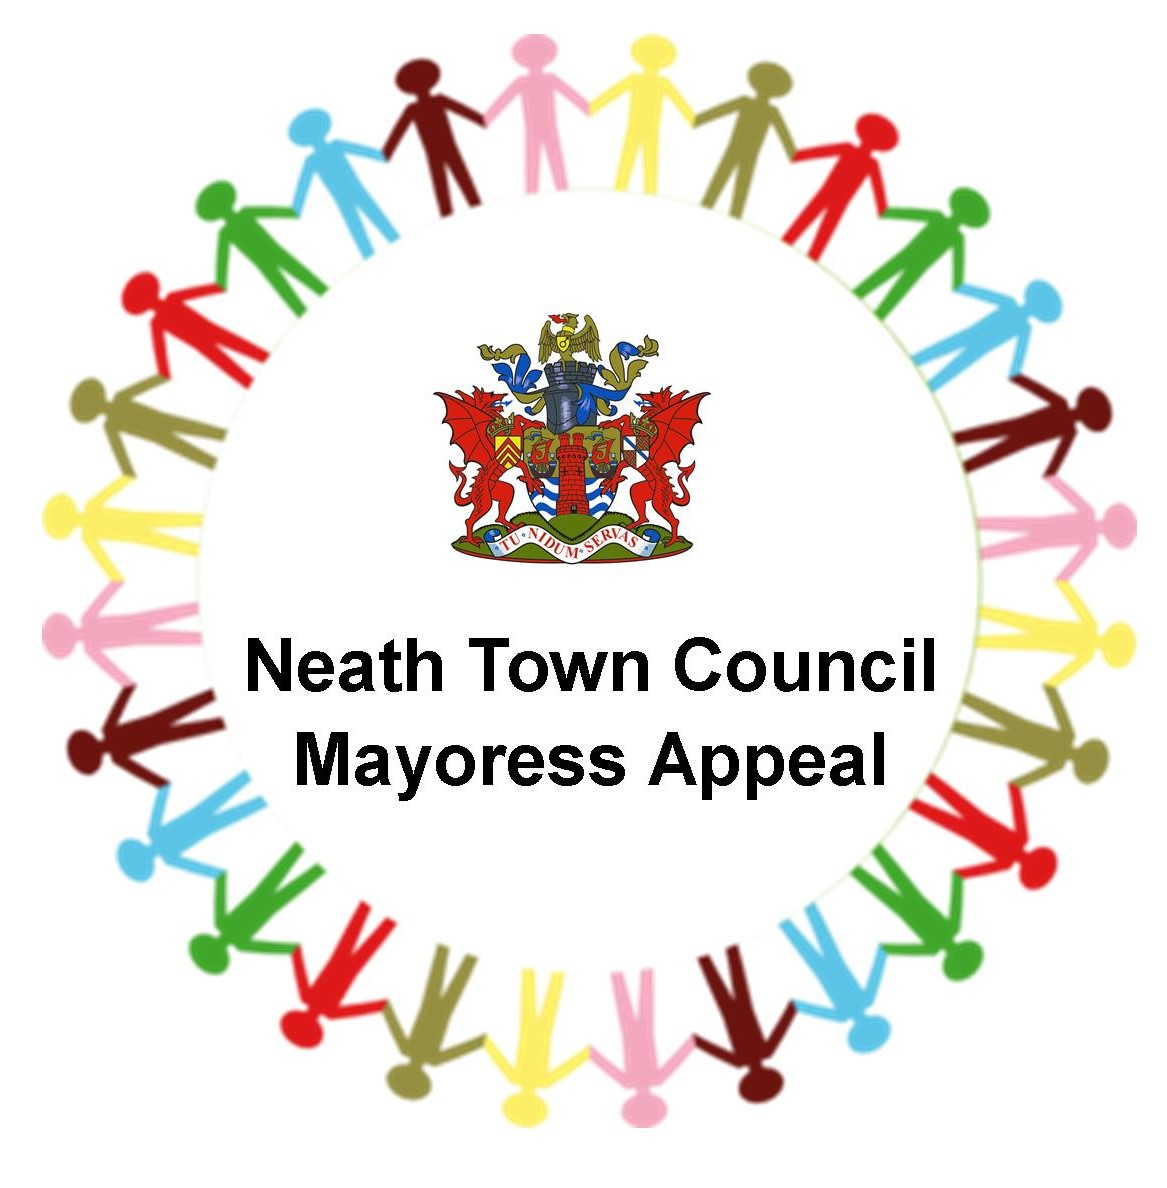 Christmas Gift Appeal: Neath Town Council